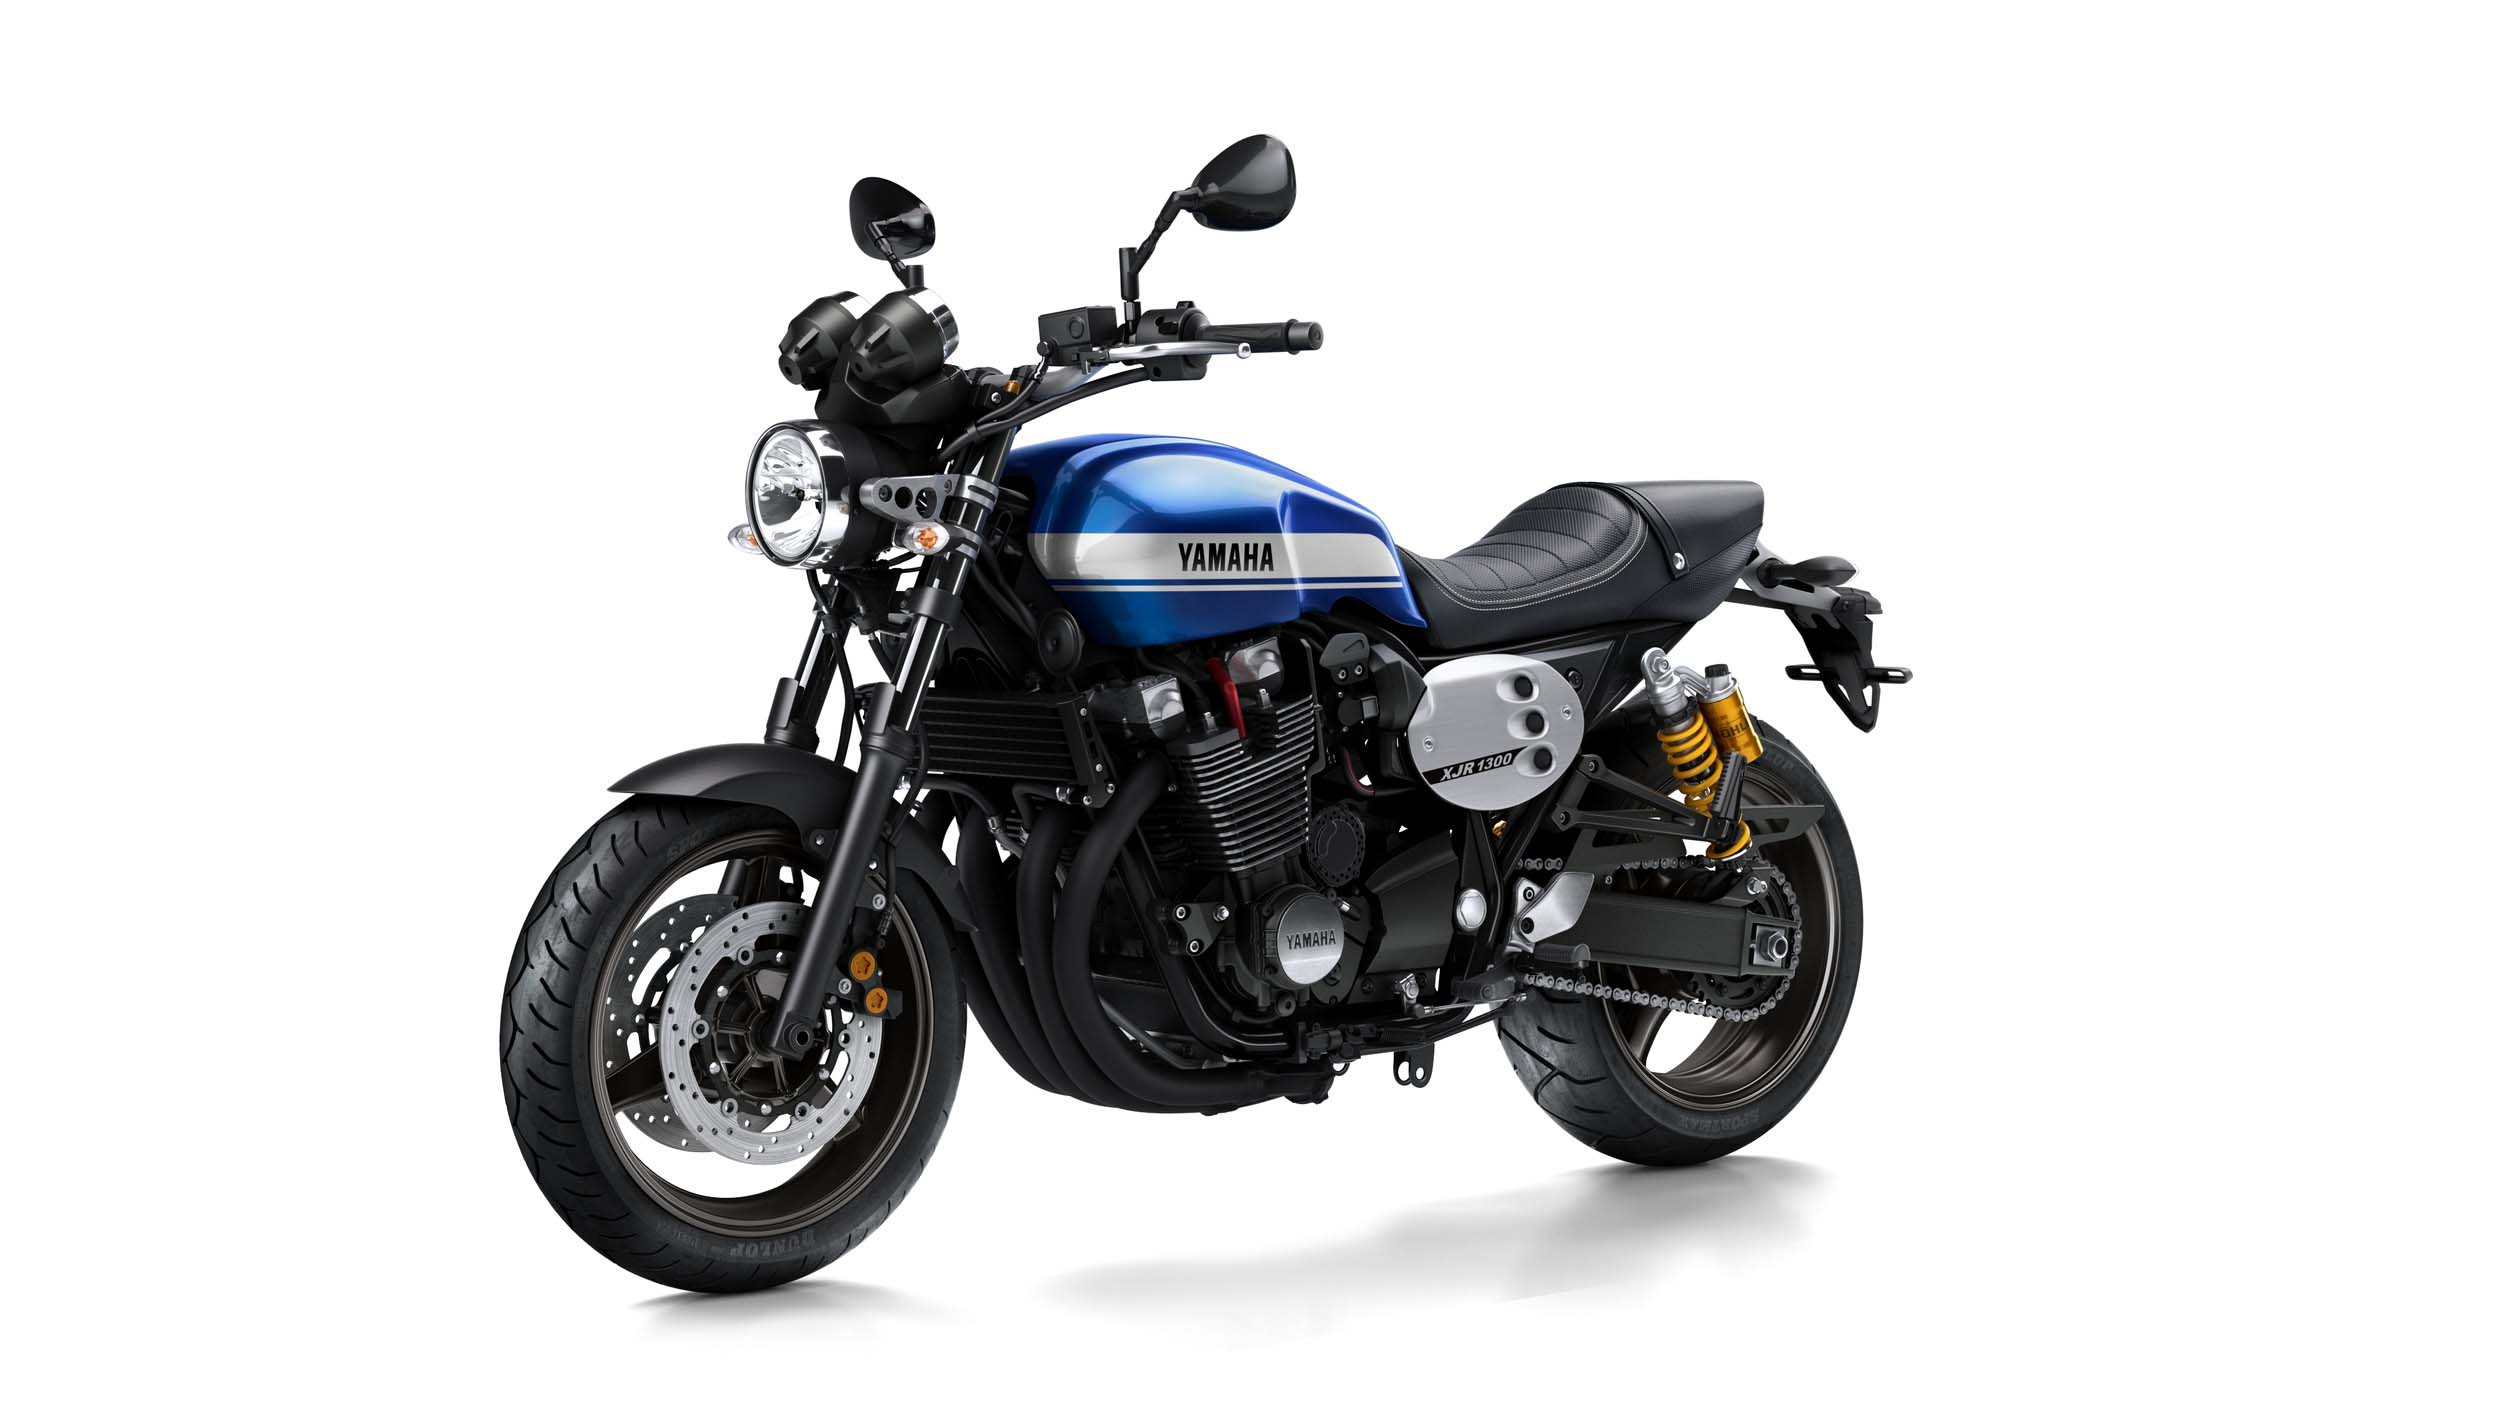 Yamaha xjr1300 photo - 5